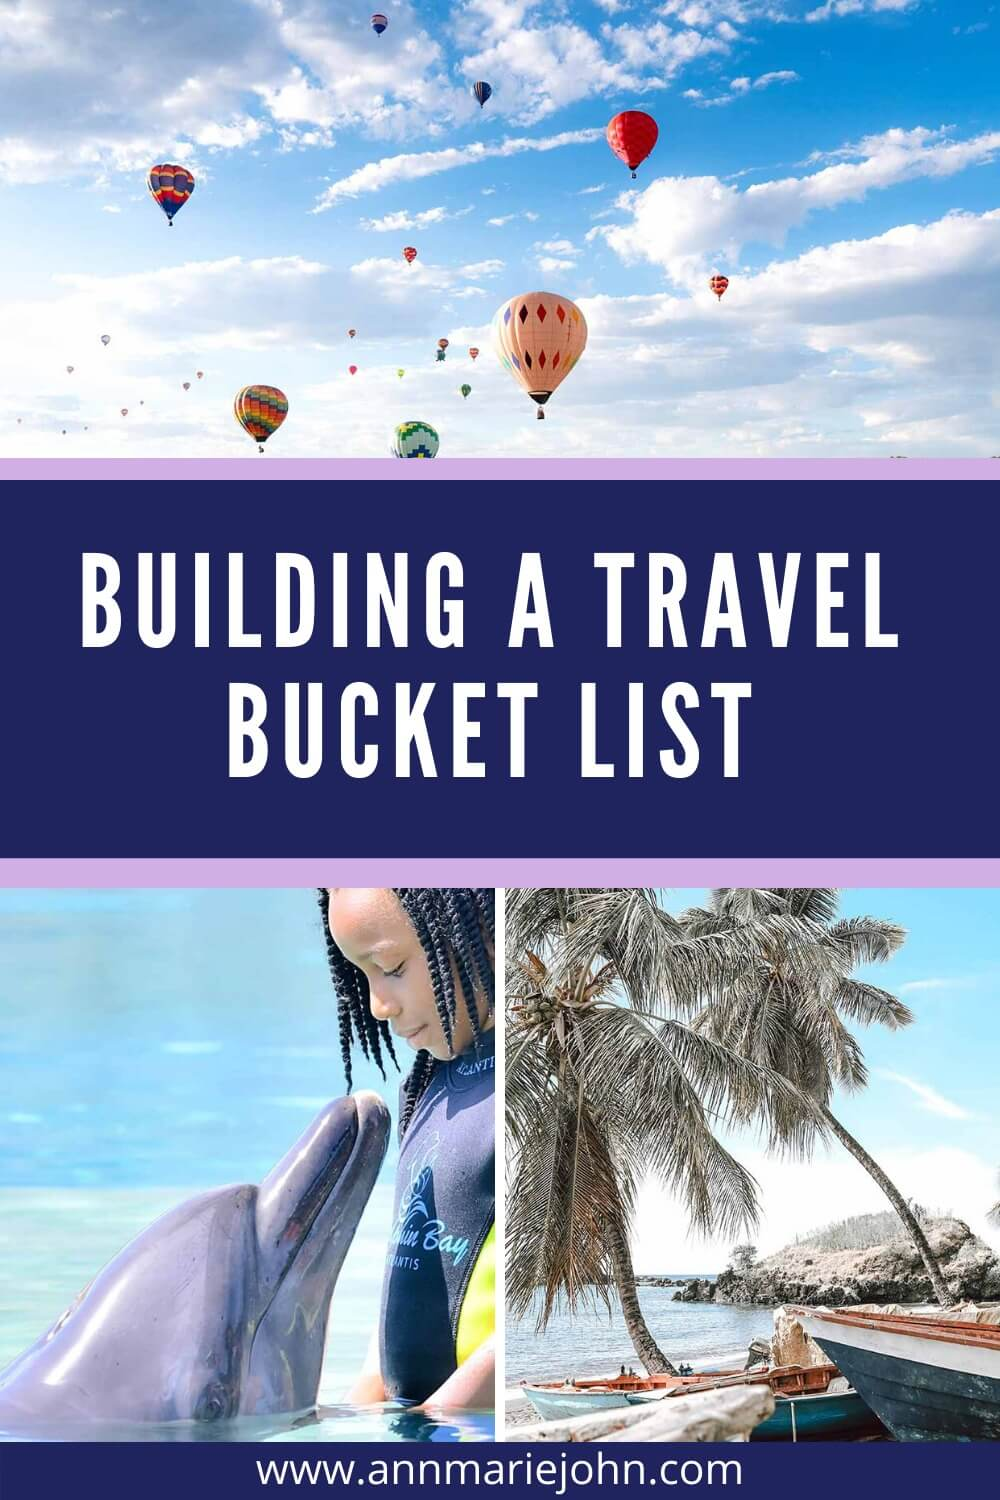 Building a Travel Bucket List